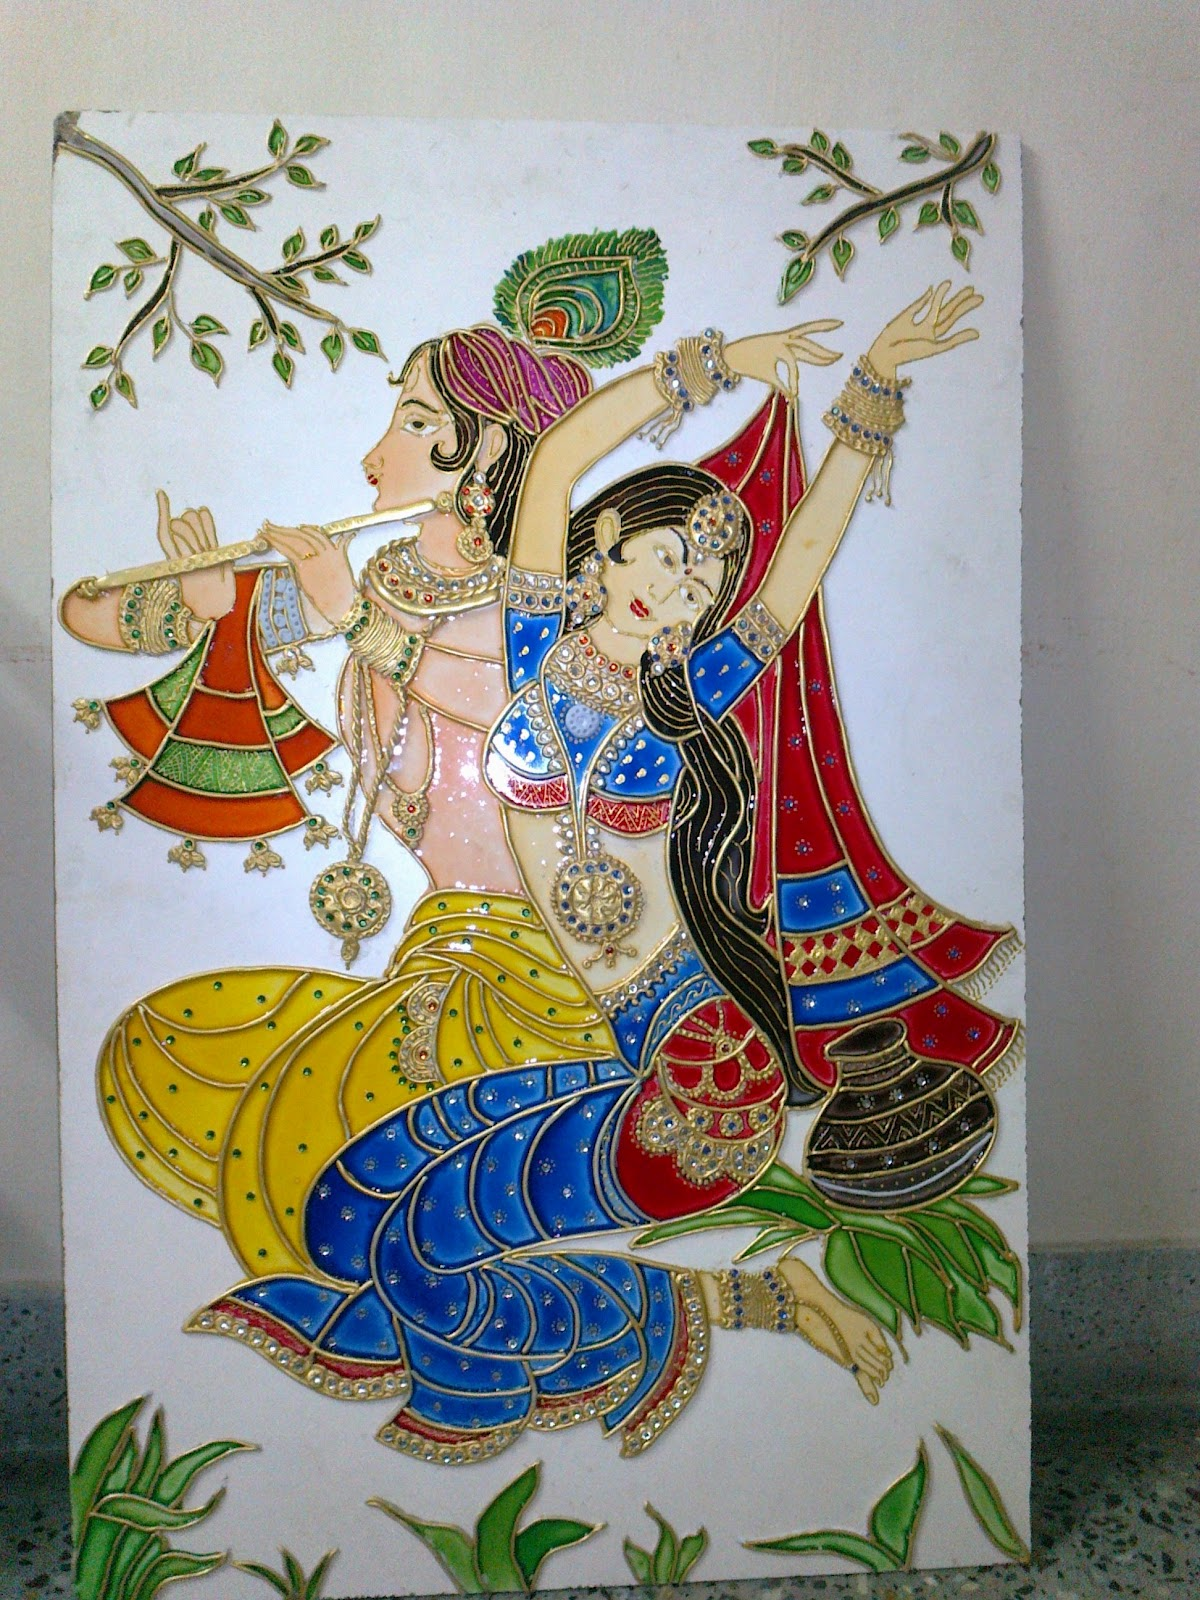 Orchids Arts And Craft Gallery In Palakkad Meenakari Painting